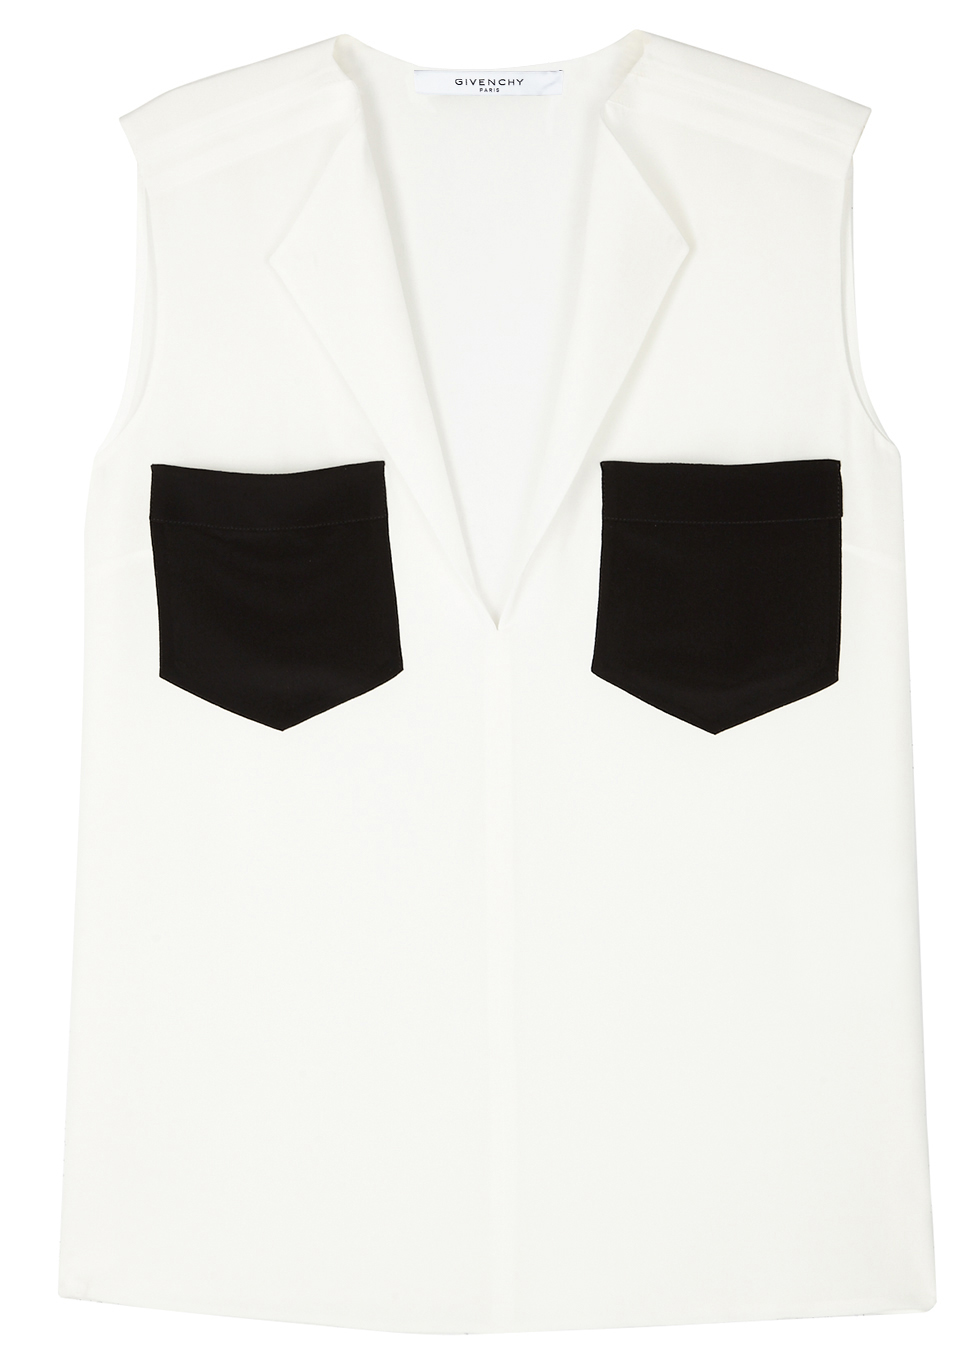 MONOCHROME SILK TOP